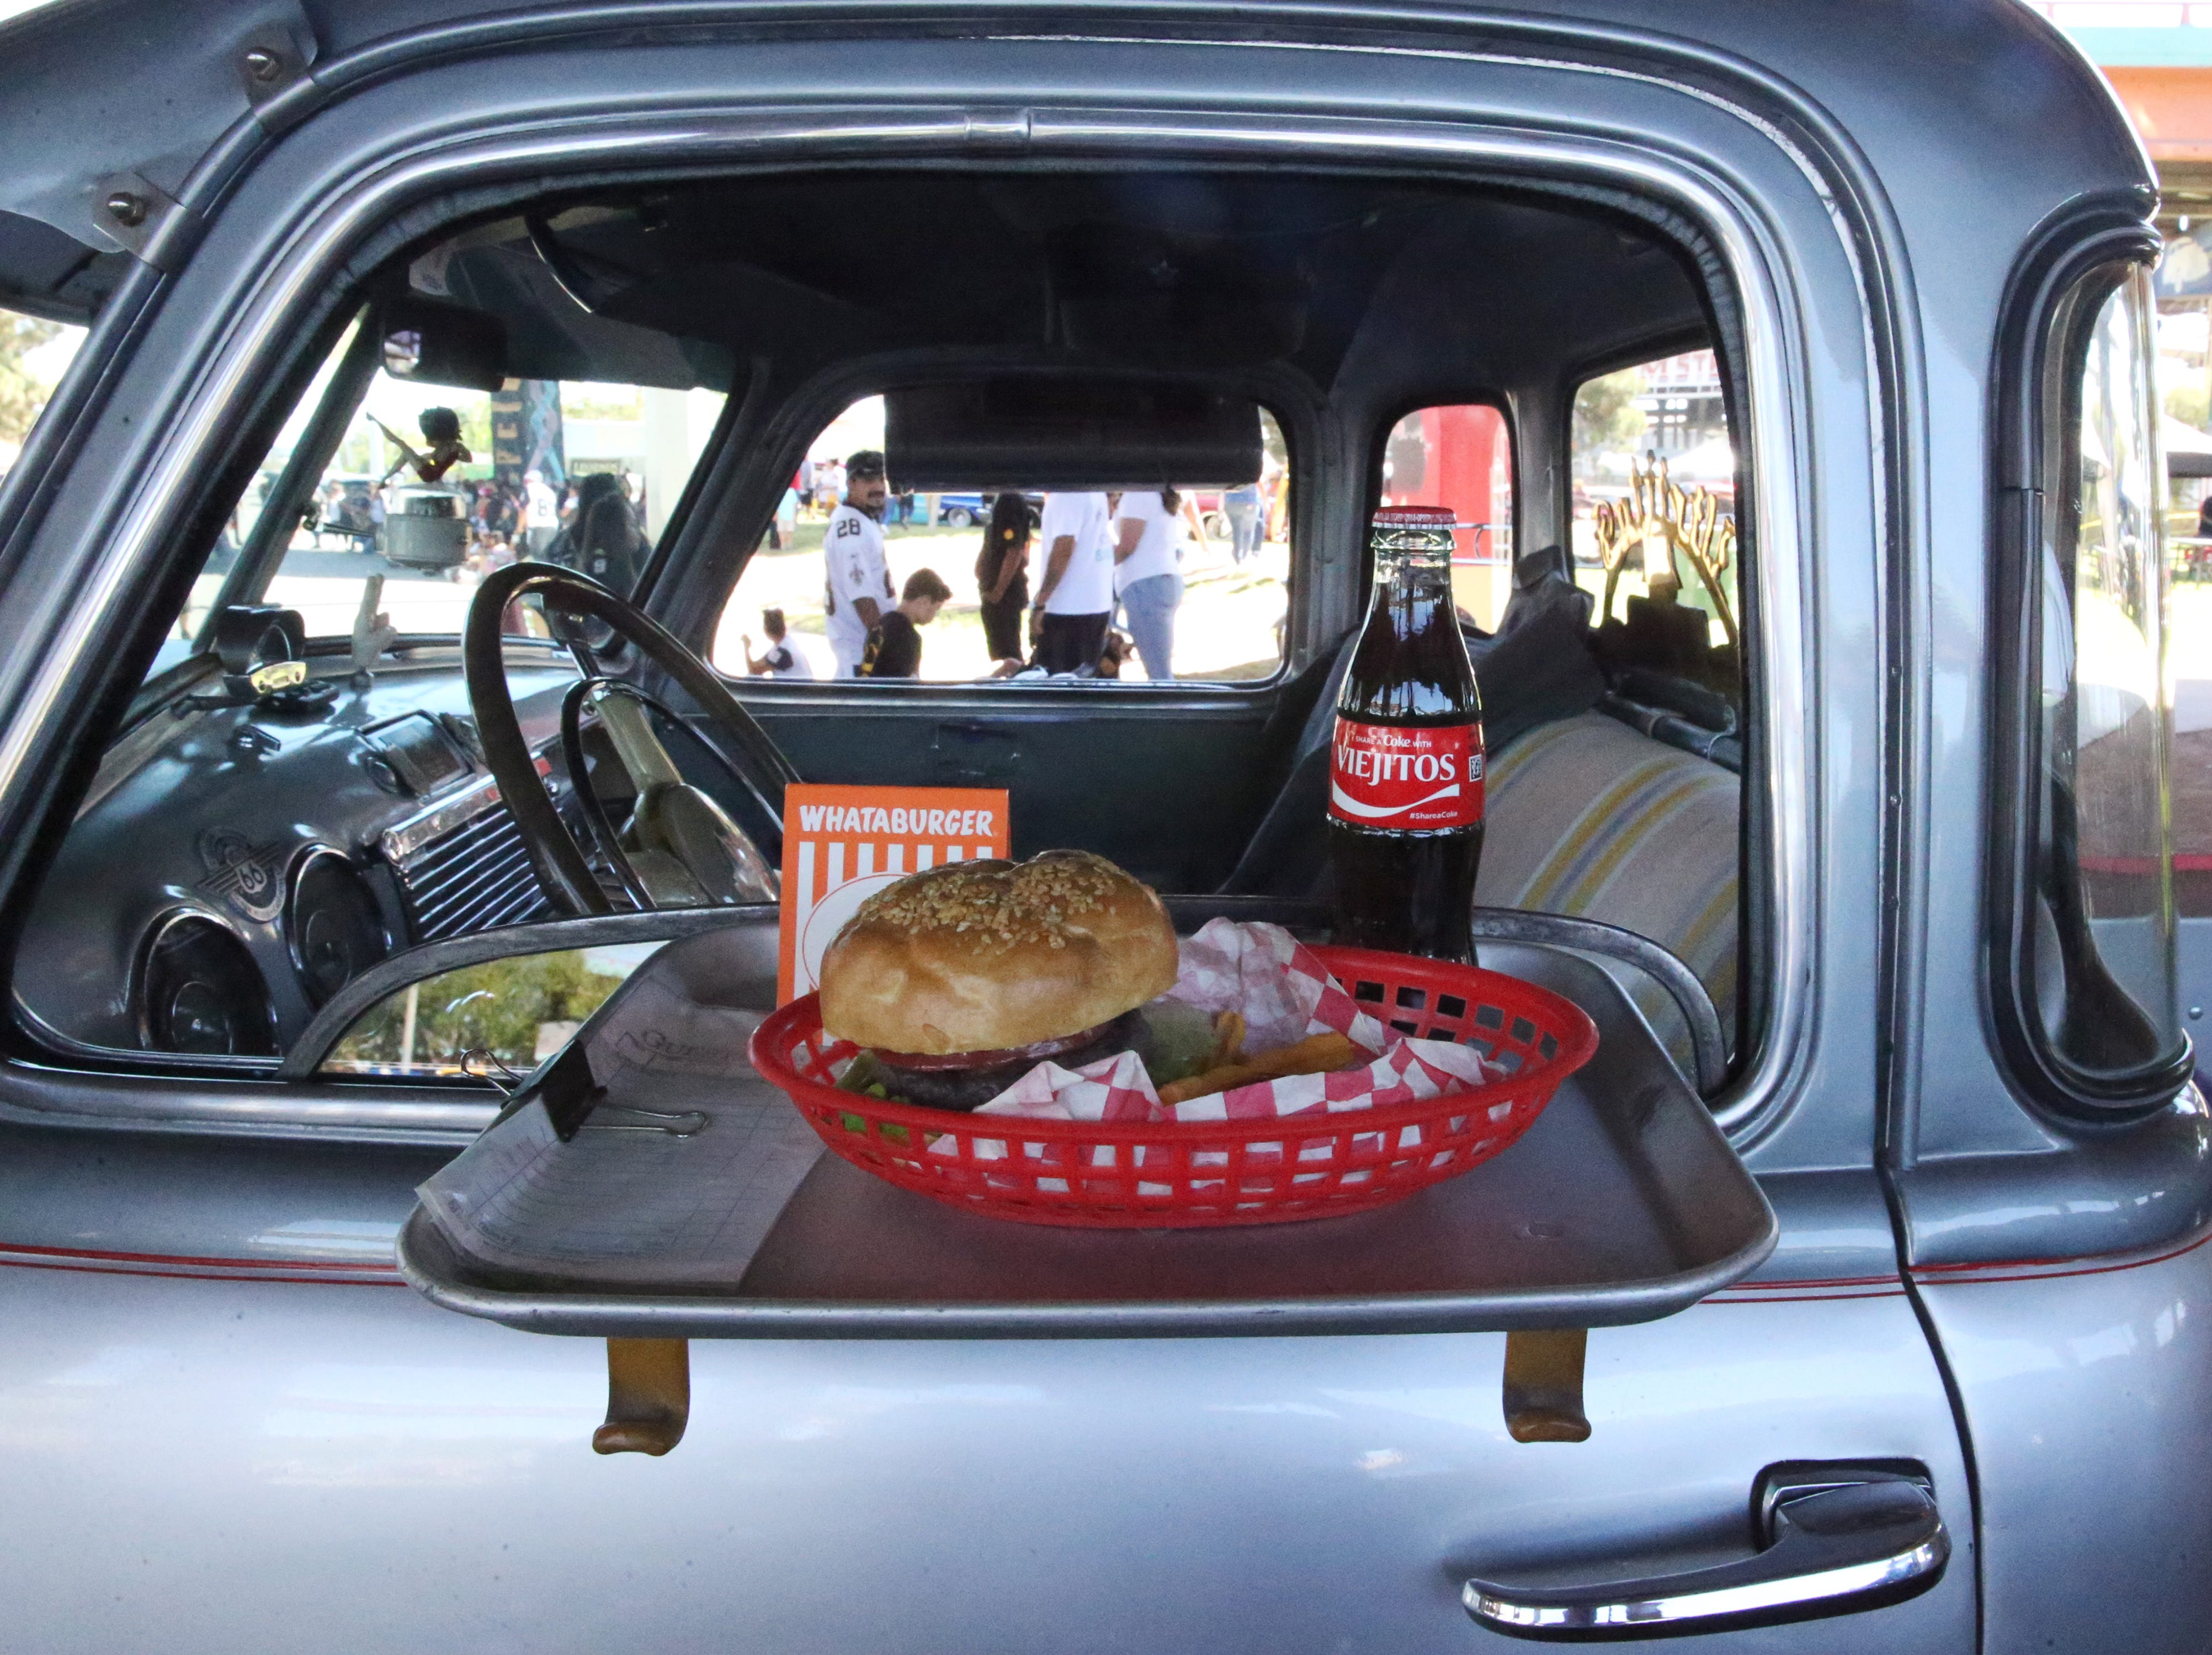 Burgers and fries at the drive-in window on this classic Chevy pickup truck.